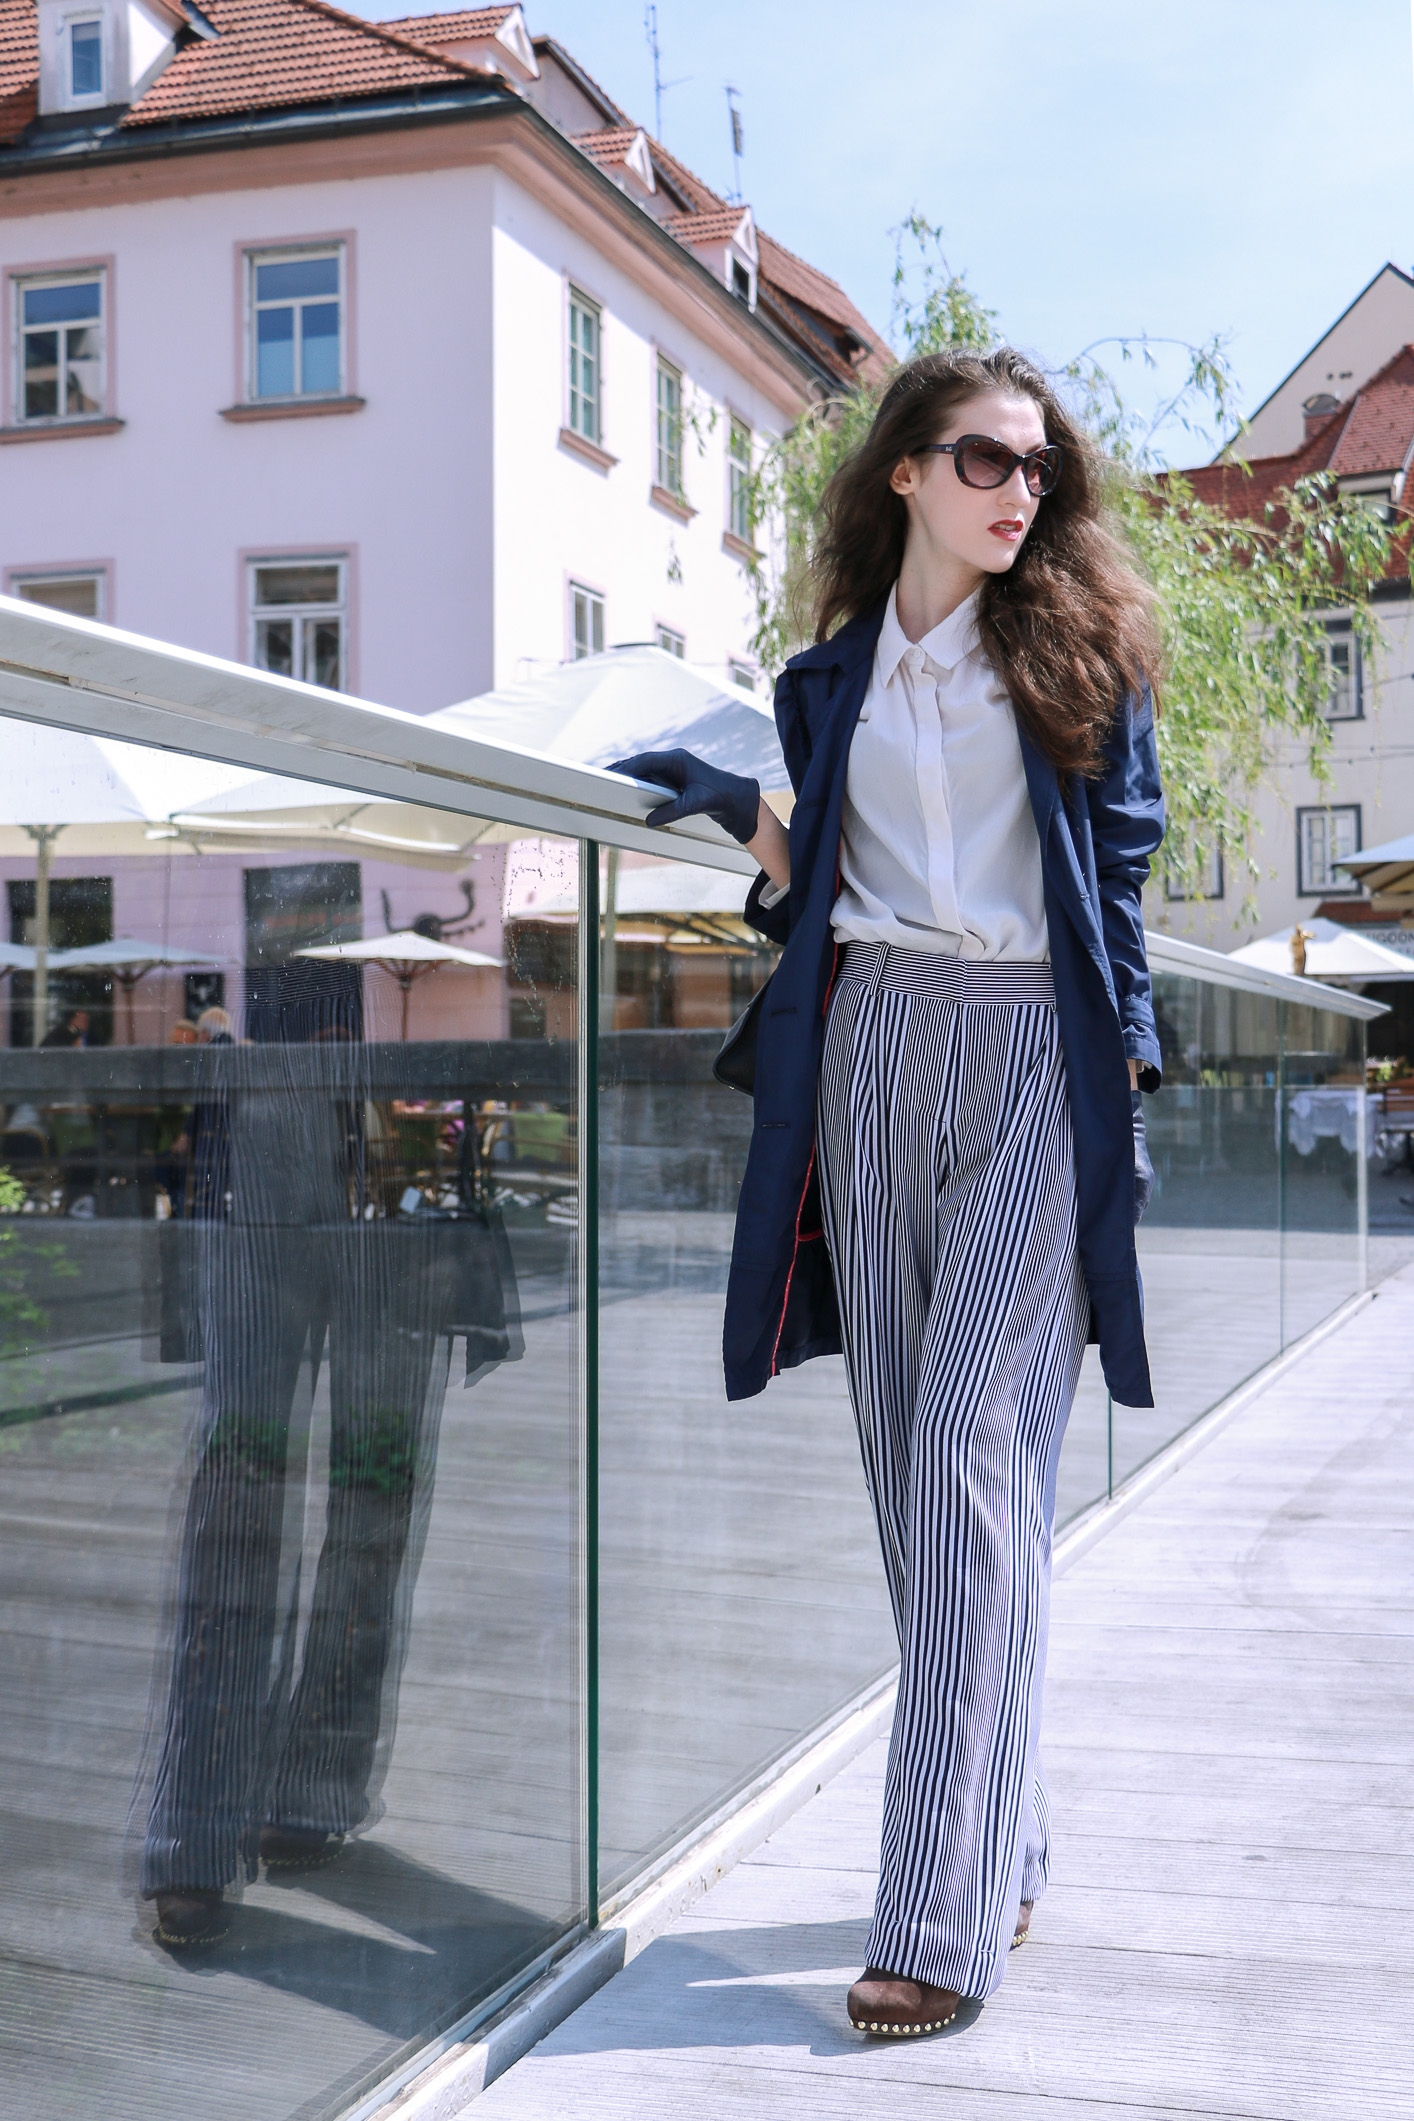 Fashion blogger Veronika Lipar of Brunette From Wall Street sharing how to wear wide-leg striped pants for a chic style this spring